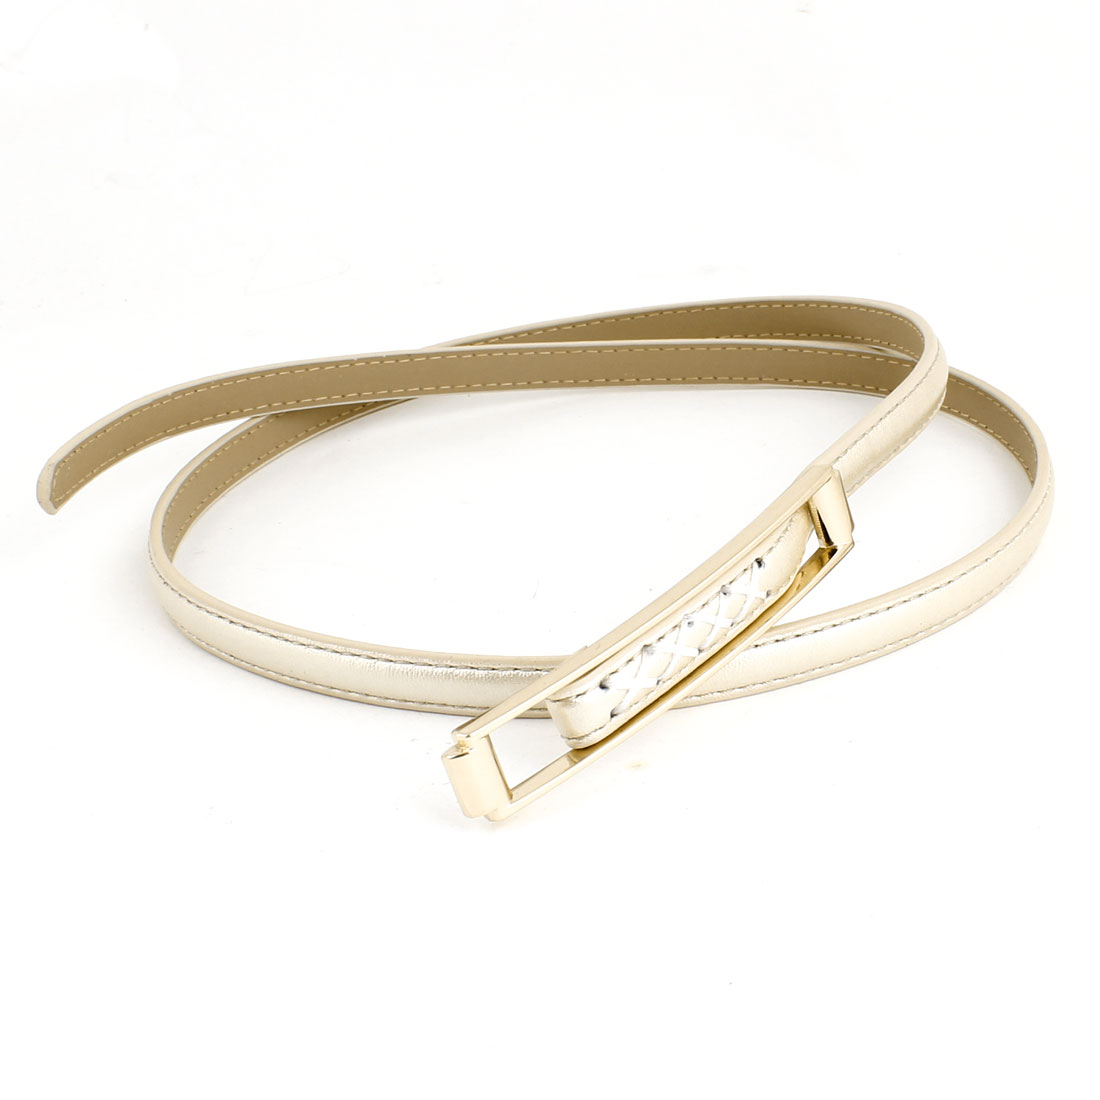 Champagne Color Faux Leather Coated Adjustable Slender Waist Belt for Women